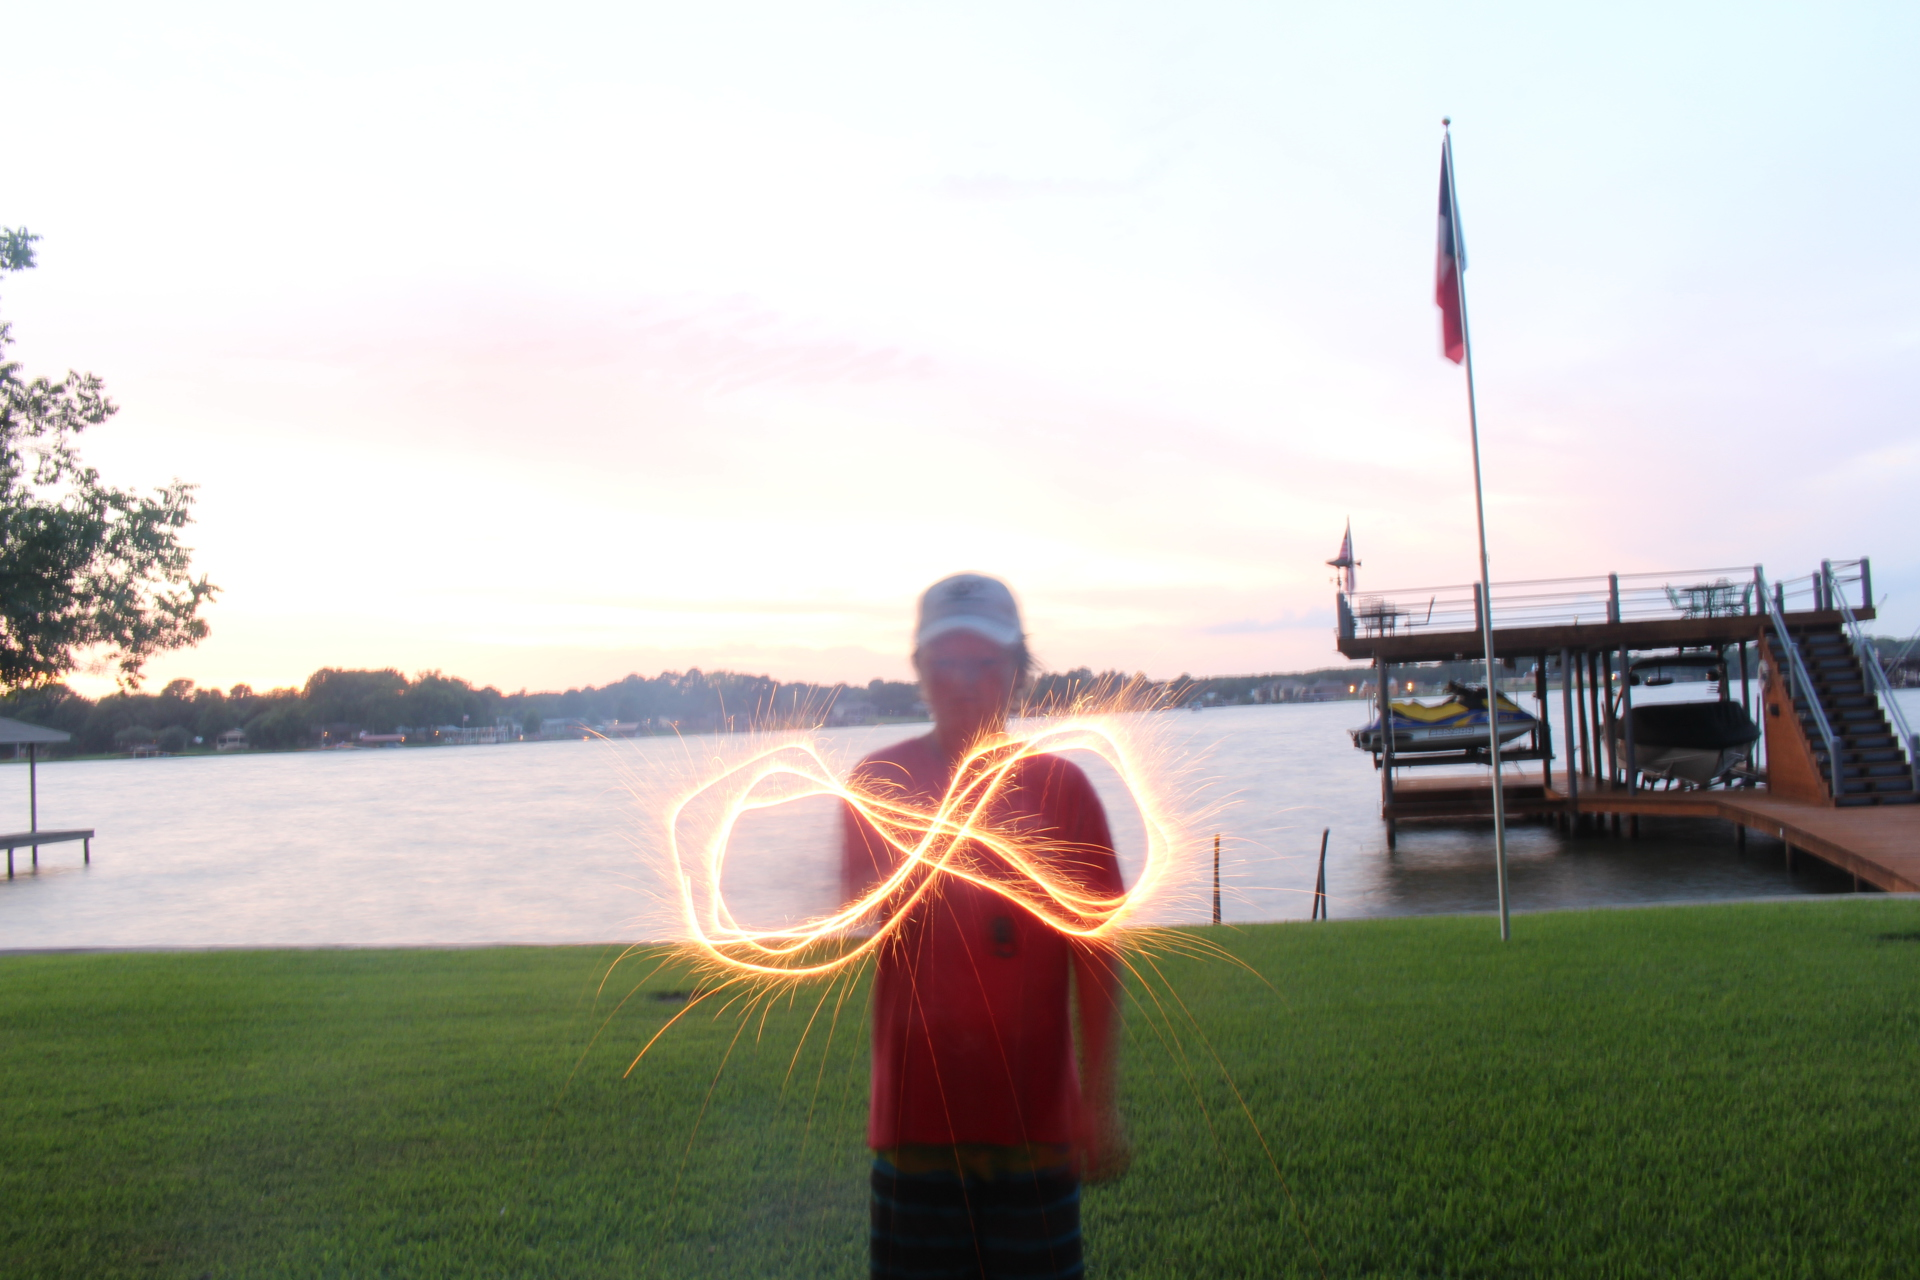 infinity, sparklers, action, exposure